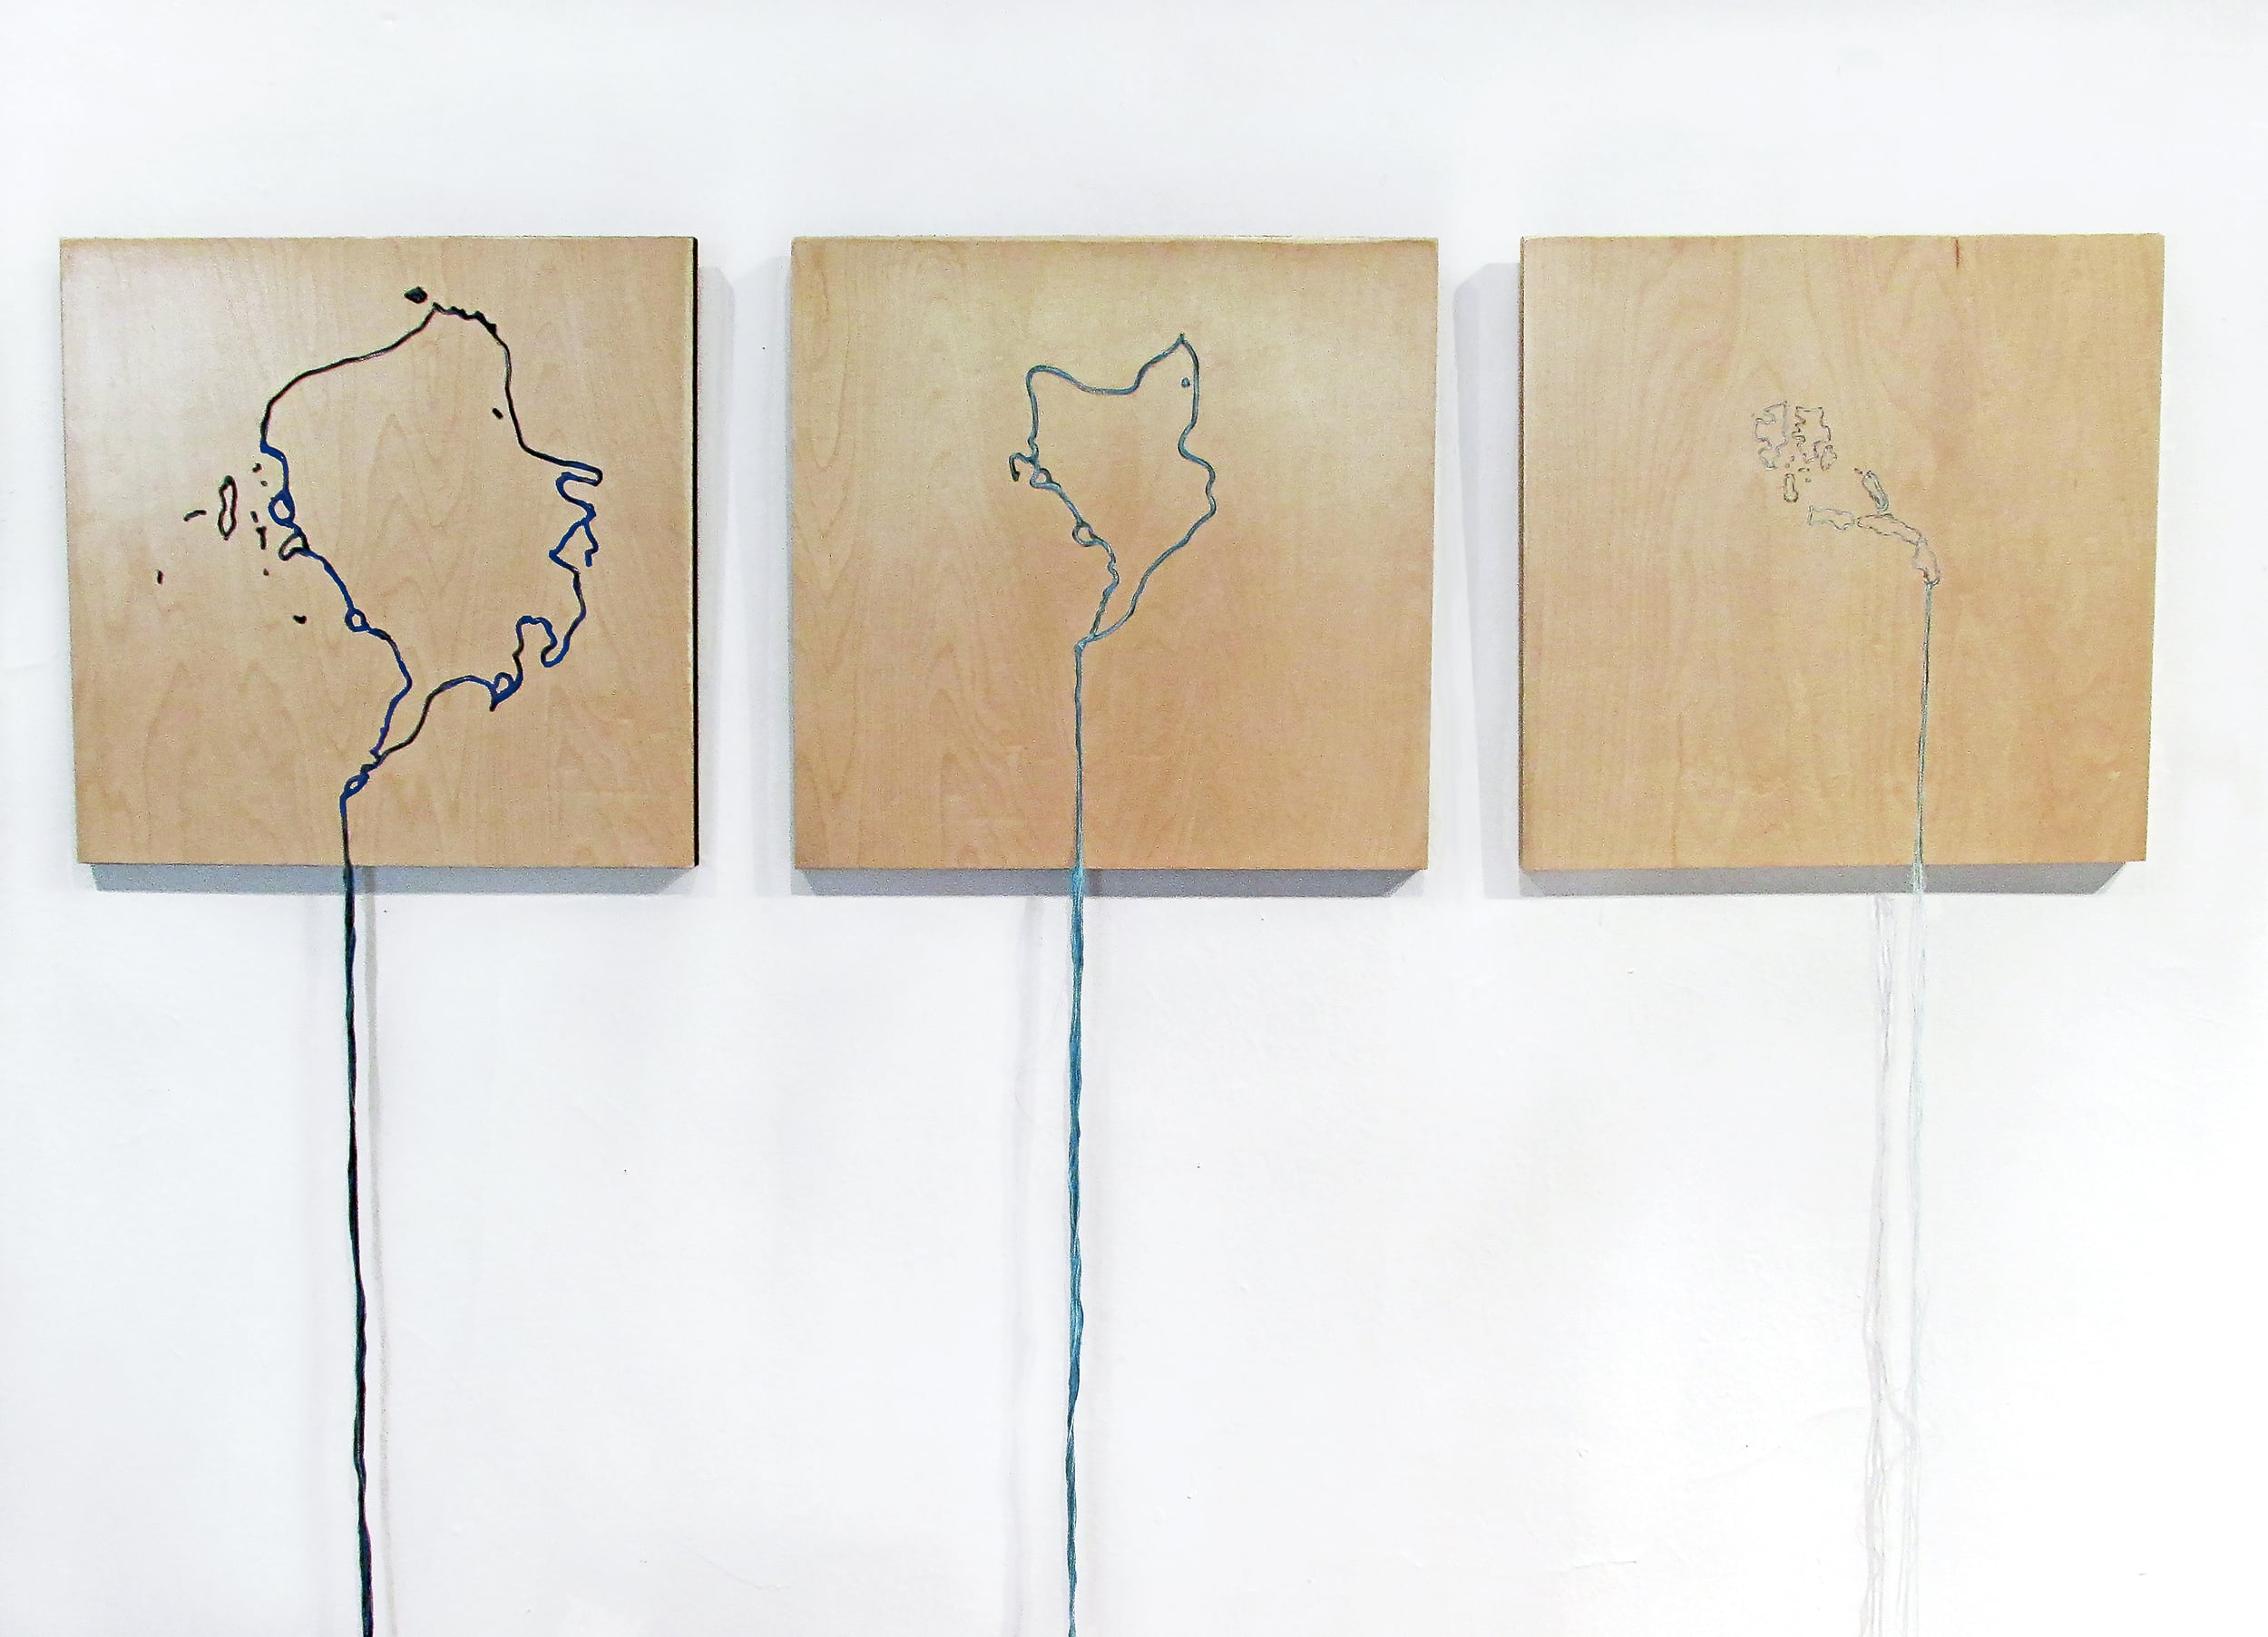 "The Arctic Meltdown, 1982|2011|2035, Embroidered plywood, 15.5"" x 15."" x 68"" each. 2015"